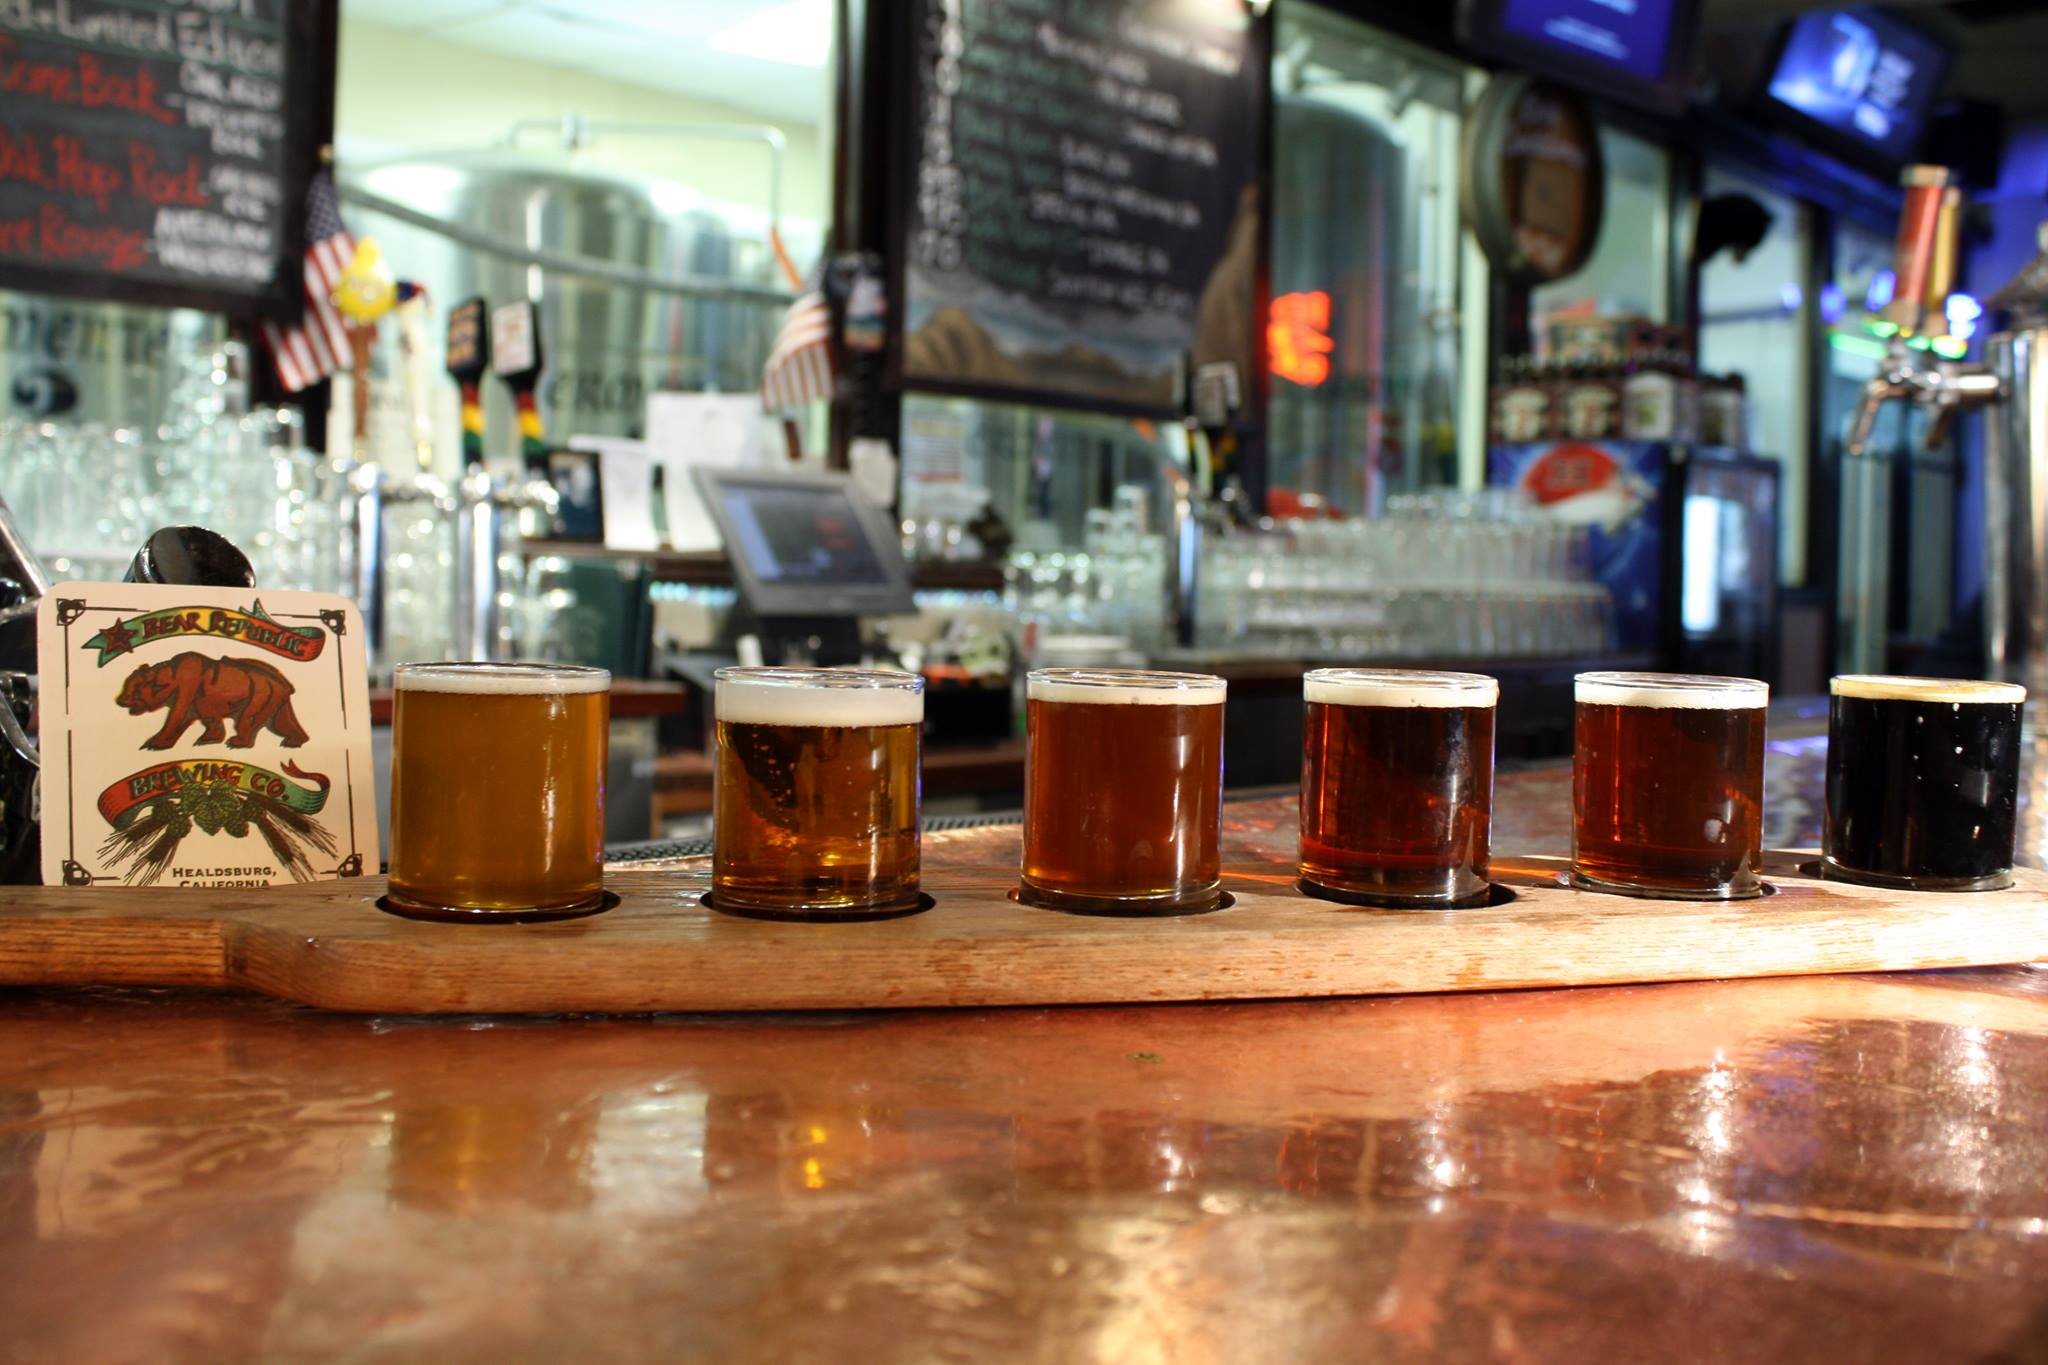 A flight at Bear Republic Brewing Co.